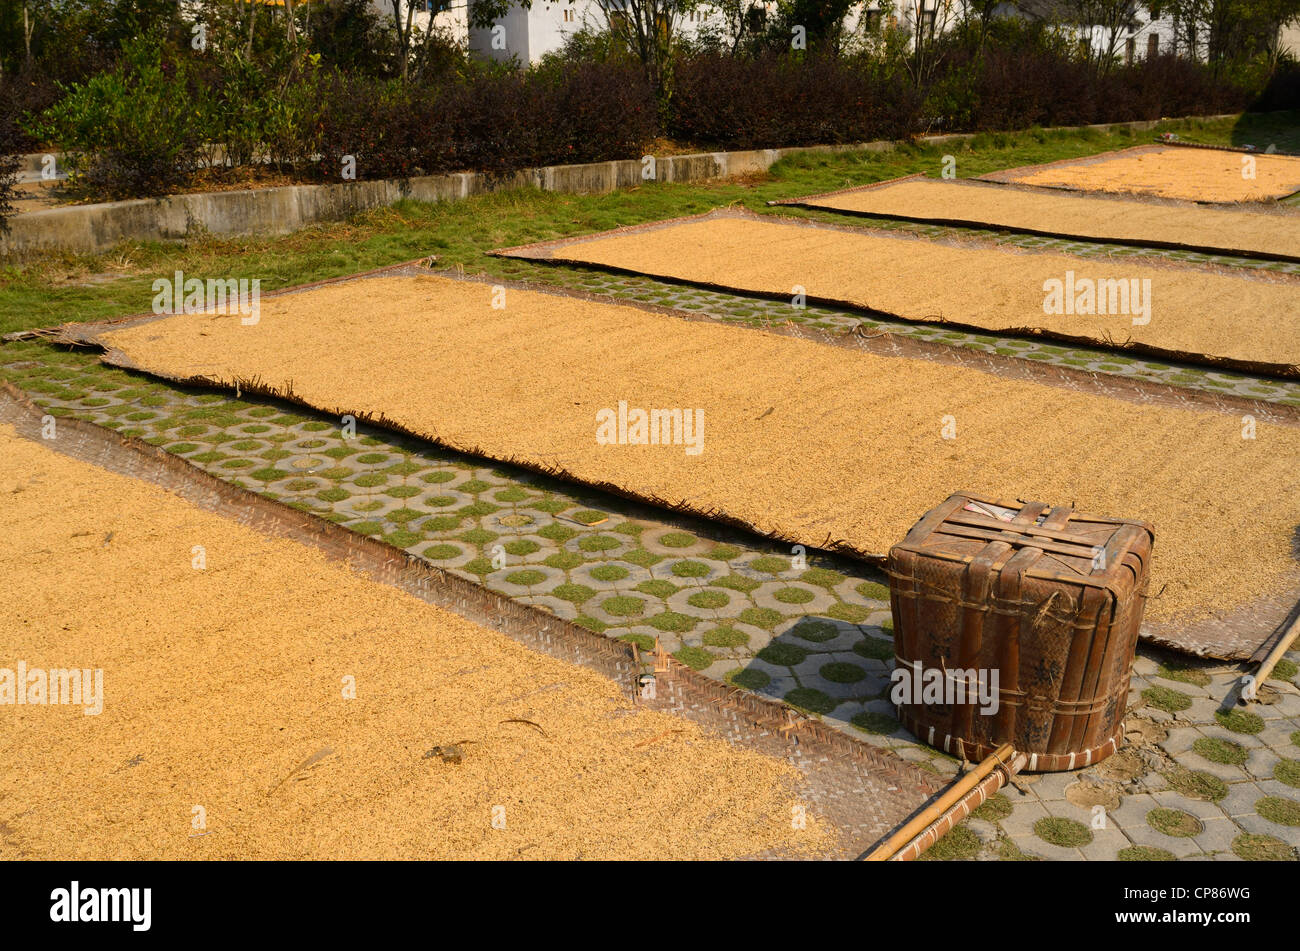 Rice on woven mats drying in the sun in ancient Chengkan village China - Stock Image